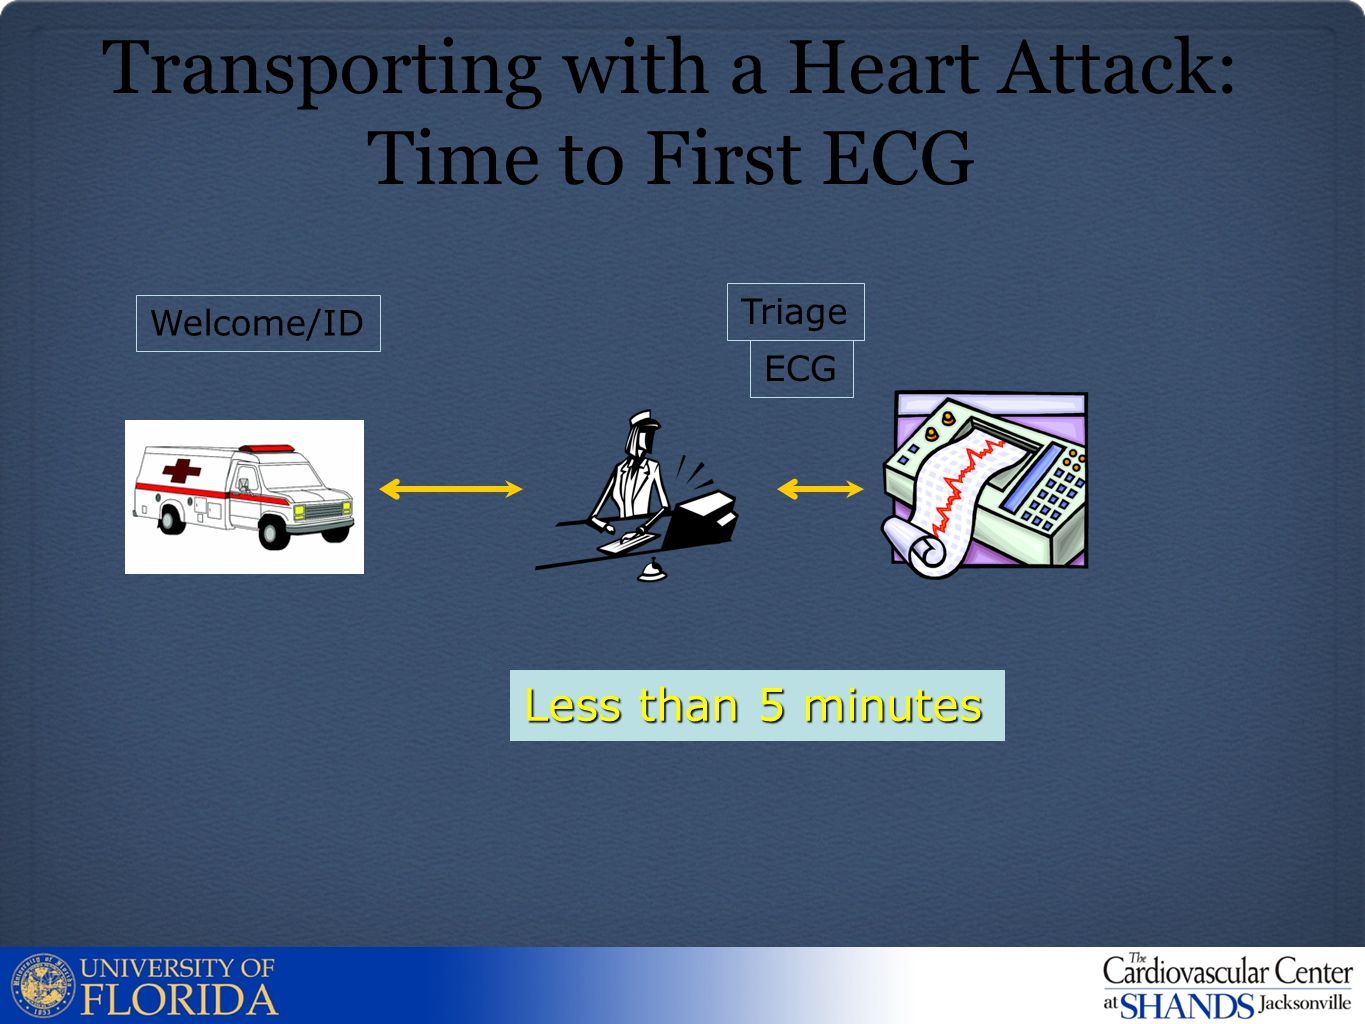 Transporting with a Heart Attack: Time to First ECG